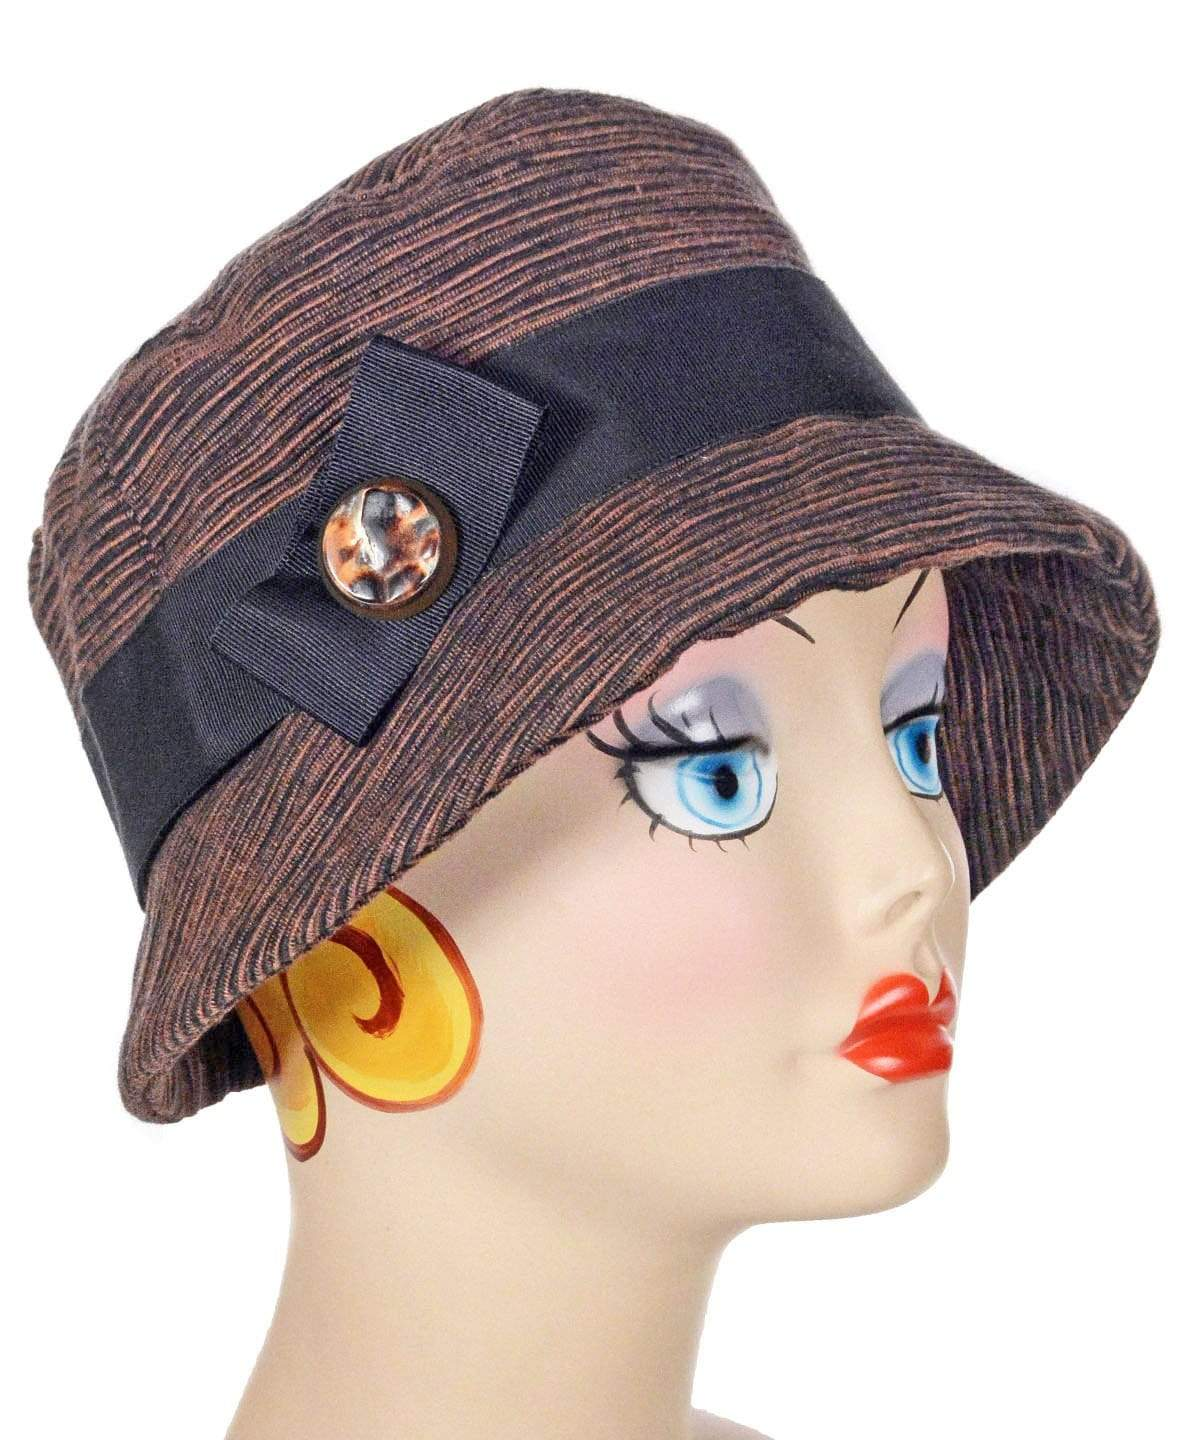 Samantha Hat Style - Sonora Brown/Black (One Medium Left!)